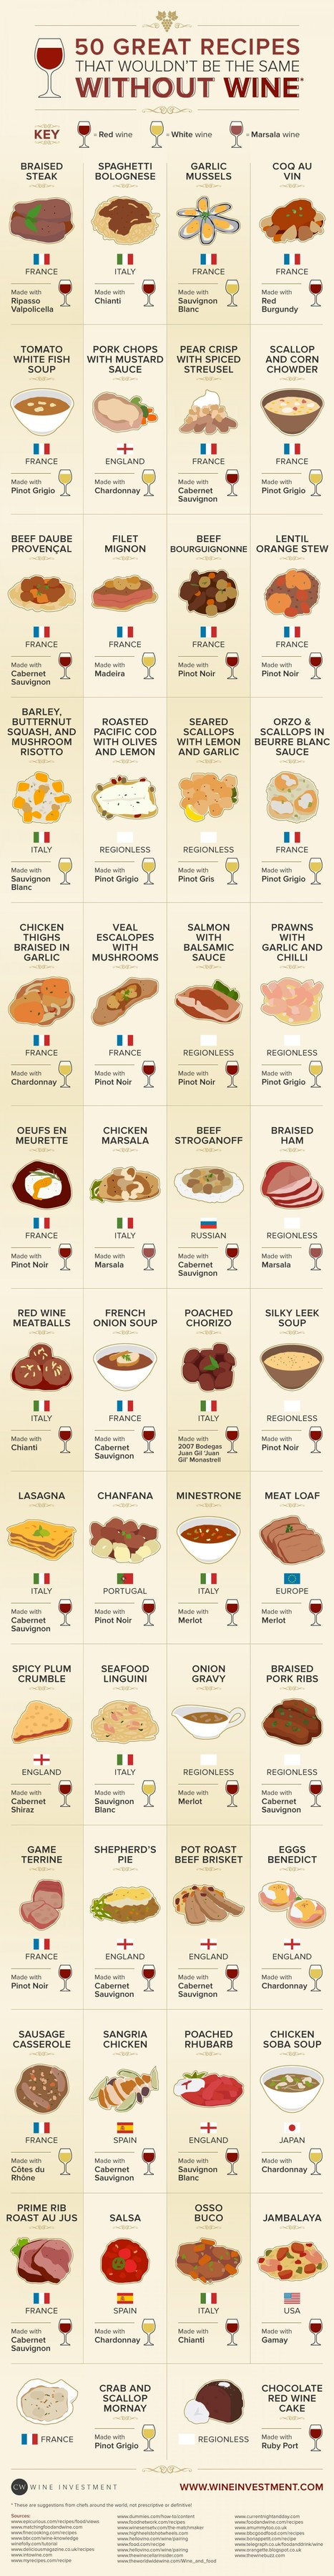 50 Awesome Recipes that wouldn't be the same without Wine | All Infographics | Scoop.it